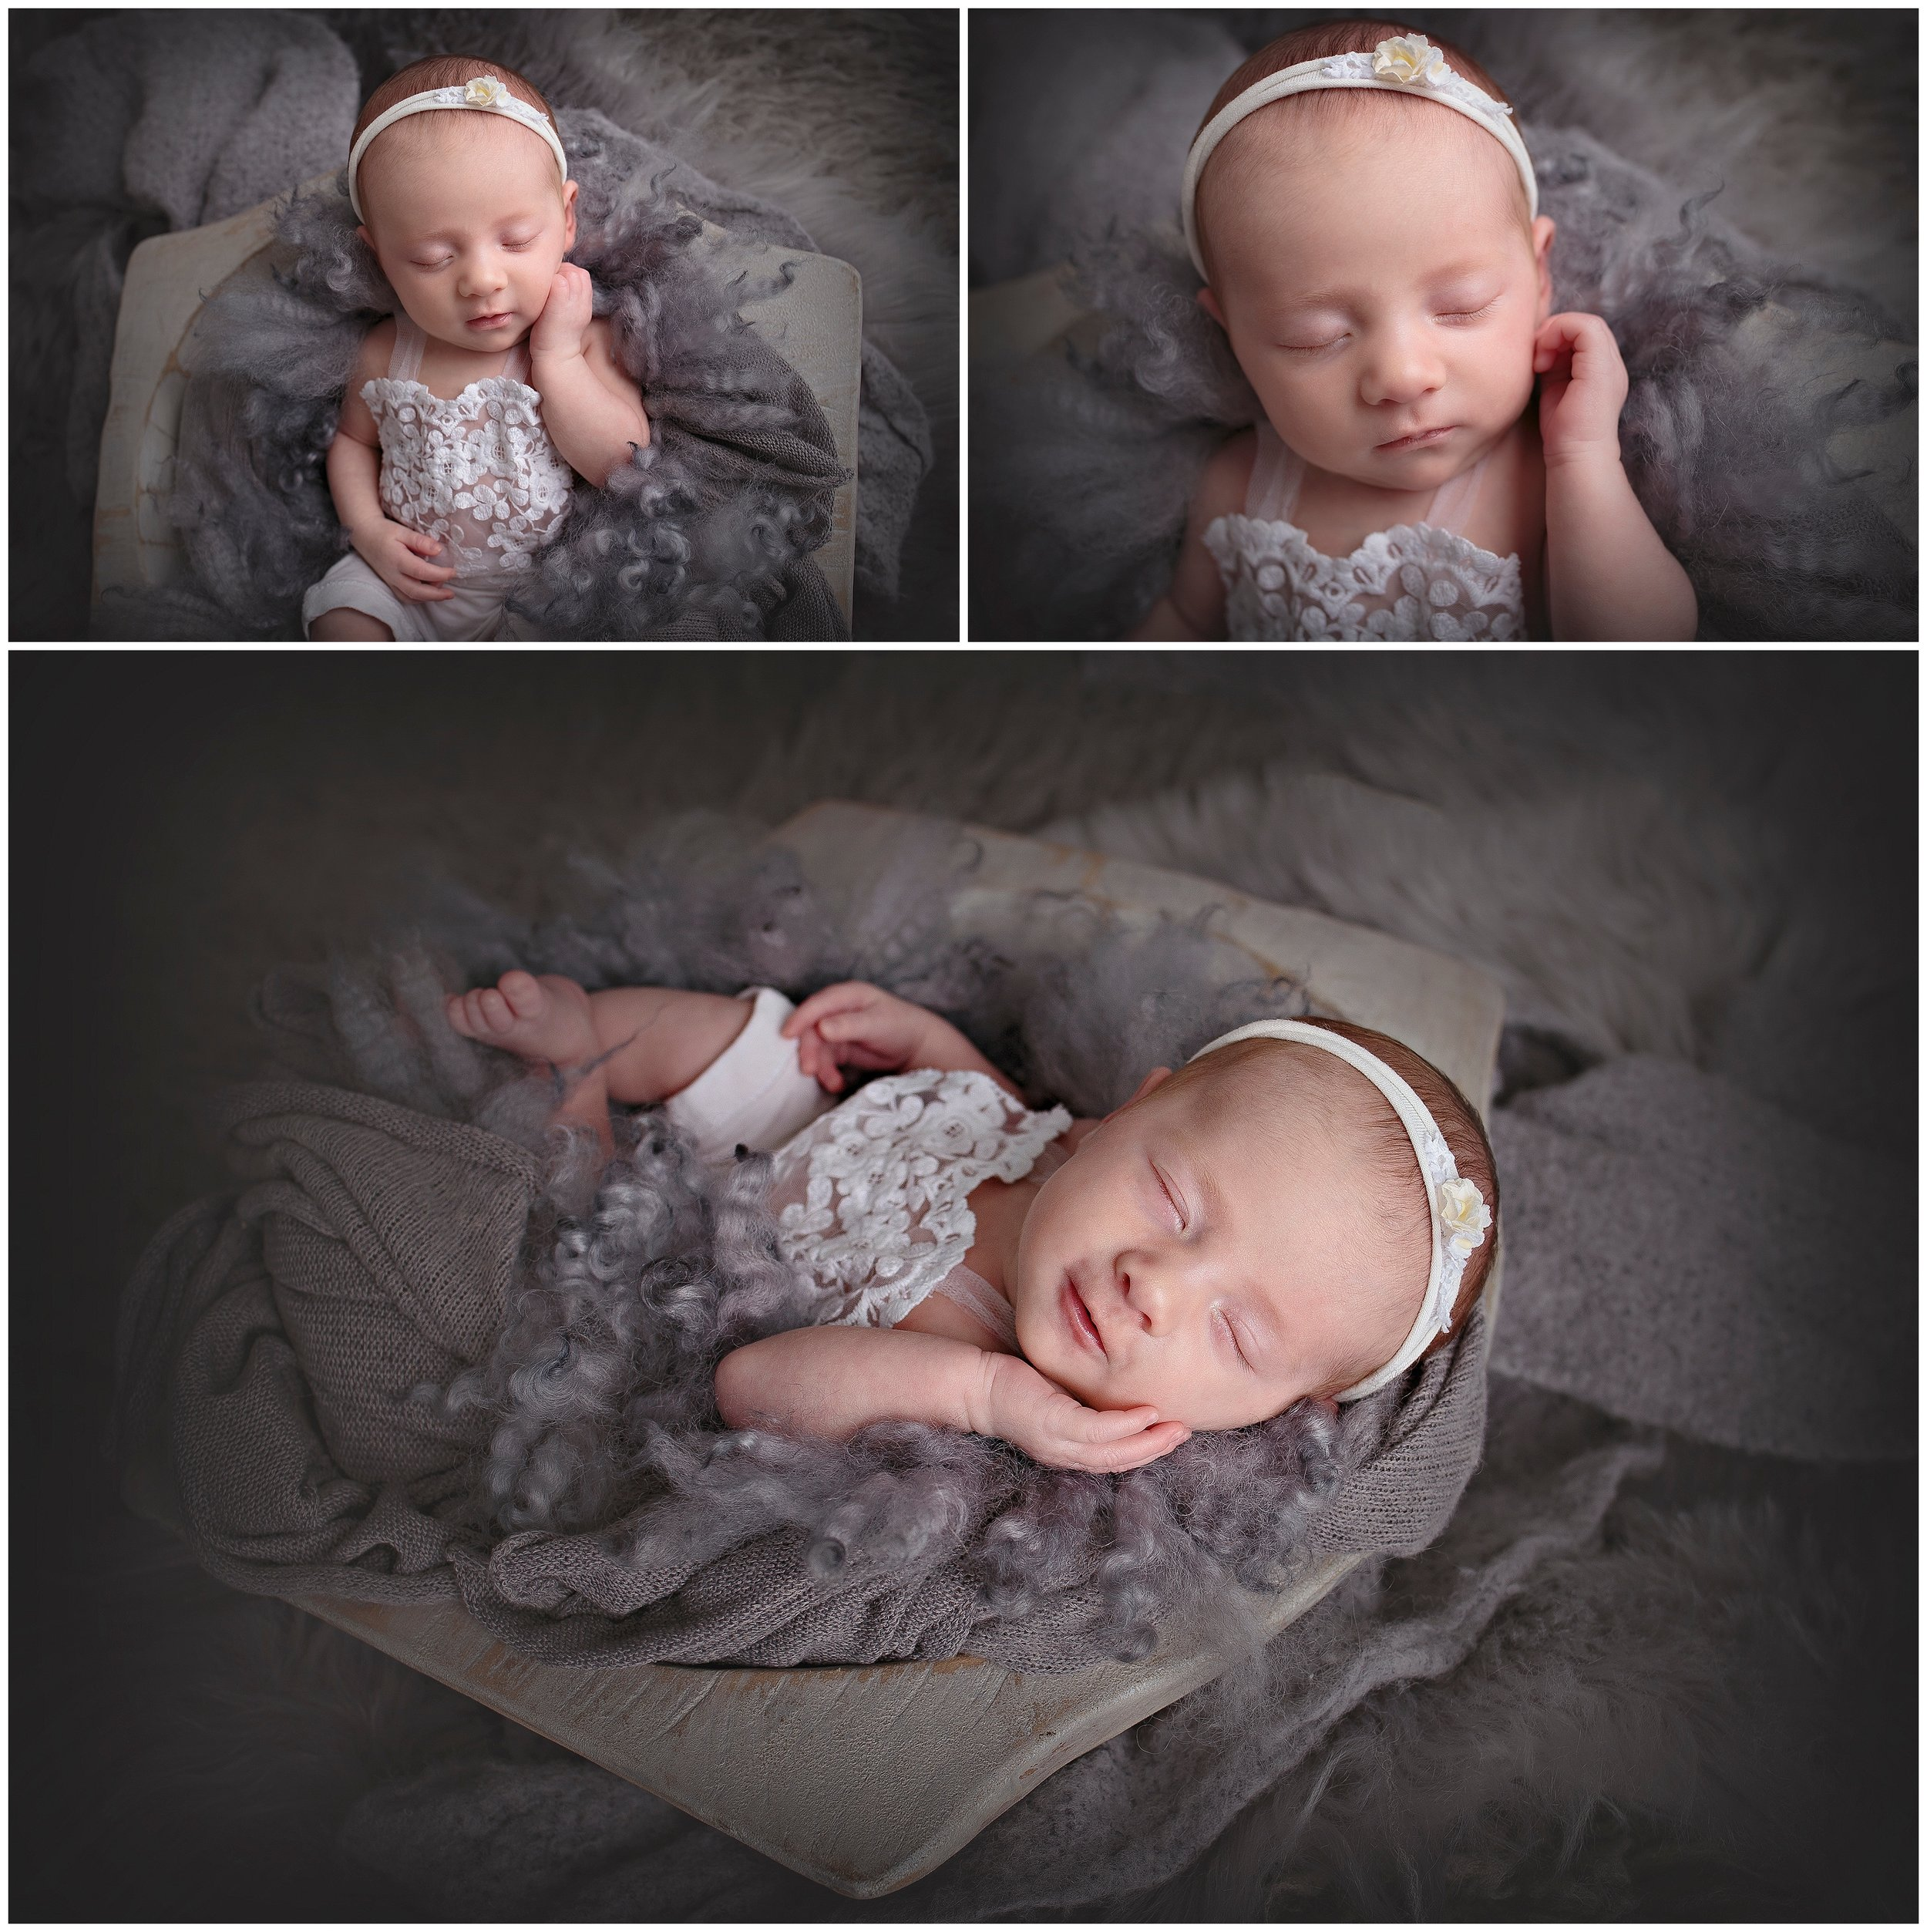 snohomish county newborn photographer.jpg